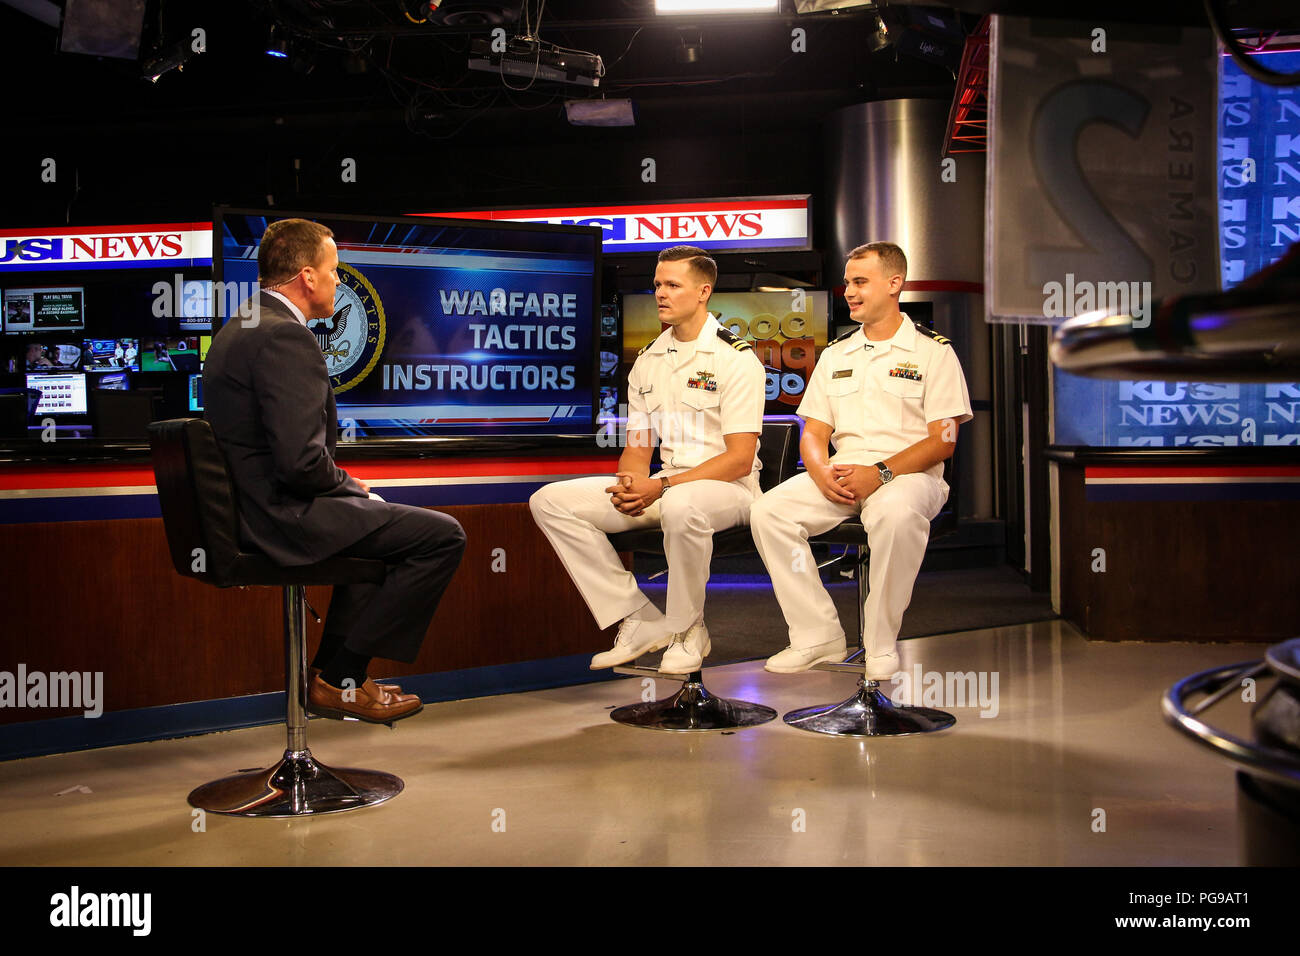 SAN DIEGO (Aug. 18, 2018) Lt. Matt Clark, center, and Lt. Caleb Bekemeier, right, Warfare Tactics Instructors (WTI) from Naval Surface and Mine Warfighting Development Center (SMWDC) sit for an interview with broadcaster Jason Austell on KUSI's Good Morning San Diego. Clark and Bekemeier discussed the WTI program, its impact on Surface Fleet lethality and tactical proficiency, and WTI participation at the upcoming Surface Navy Association West Coast Symposium. Officers interested in the WTI program should contact SWO_WTI@Navy.mil for more information and to begin the application process. SMWDC - Stock Image